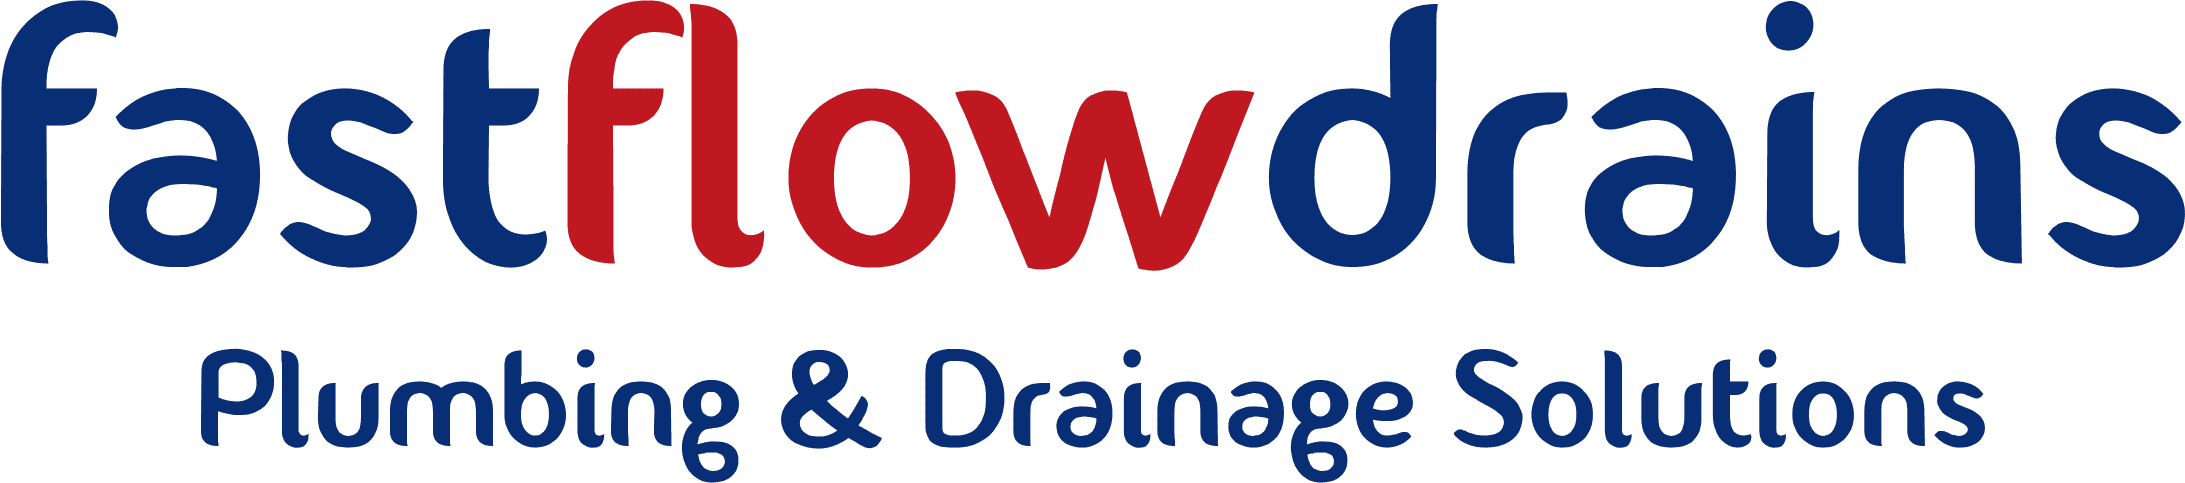 Fast Flow Drains Ltd logo